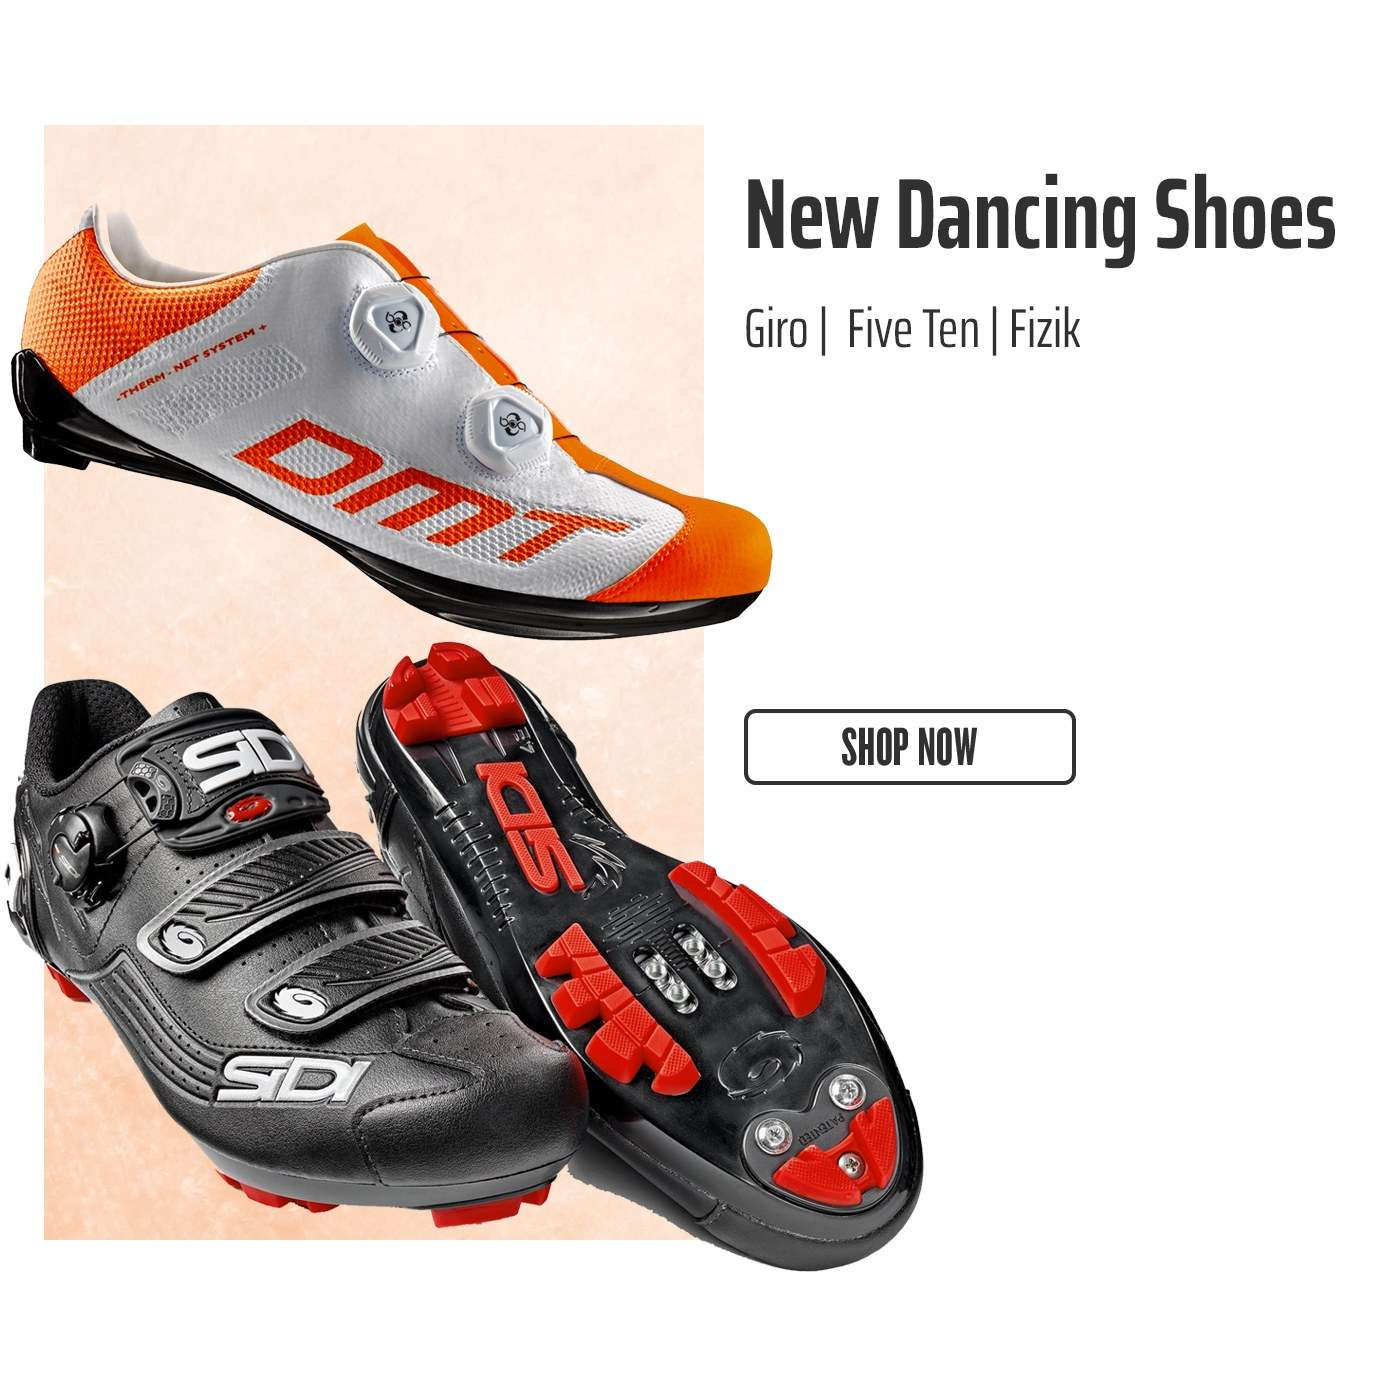 New Dancing Shoes